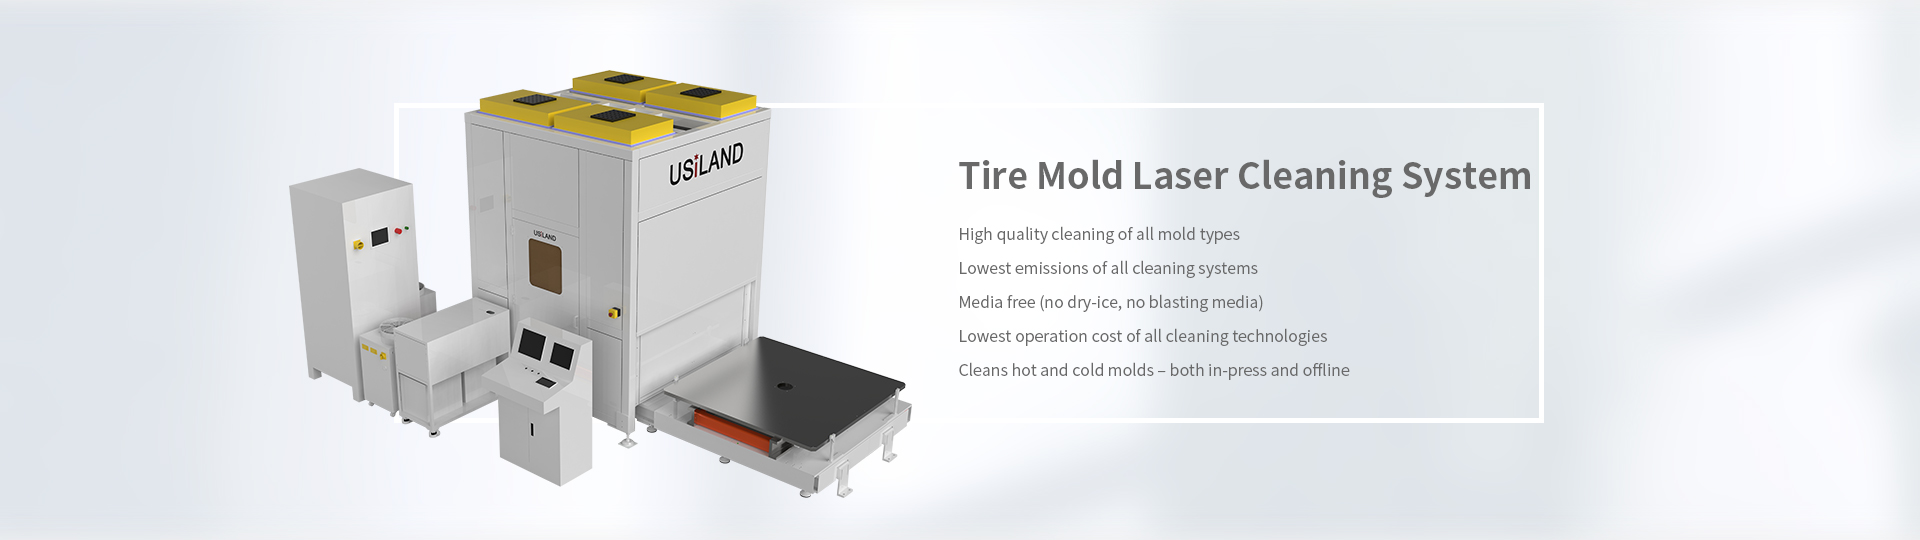 Tire mold laser cleaning system